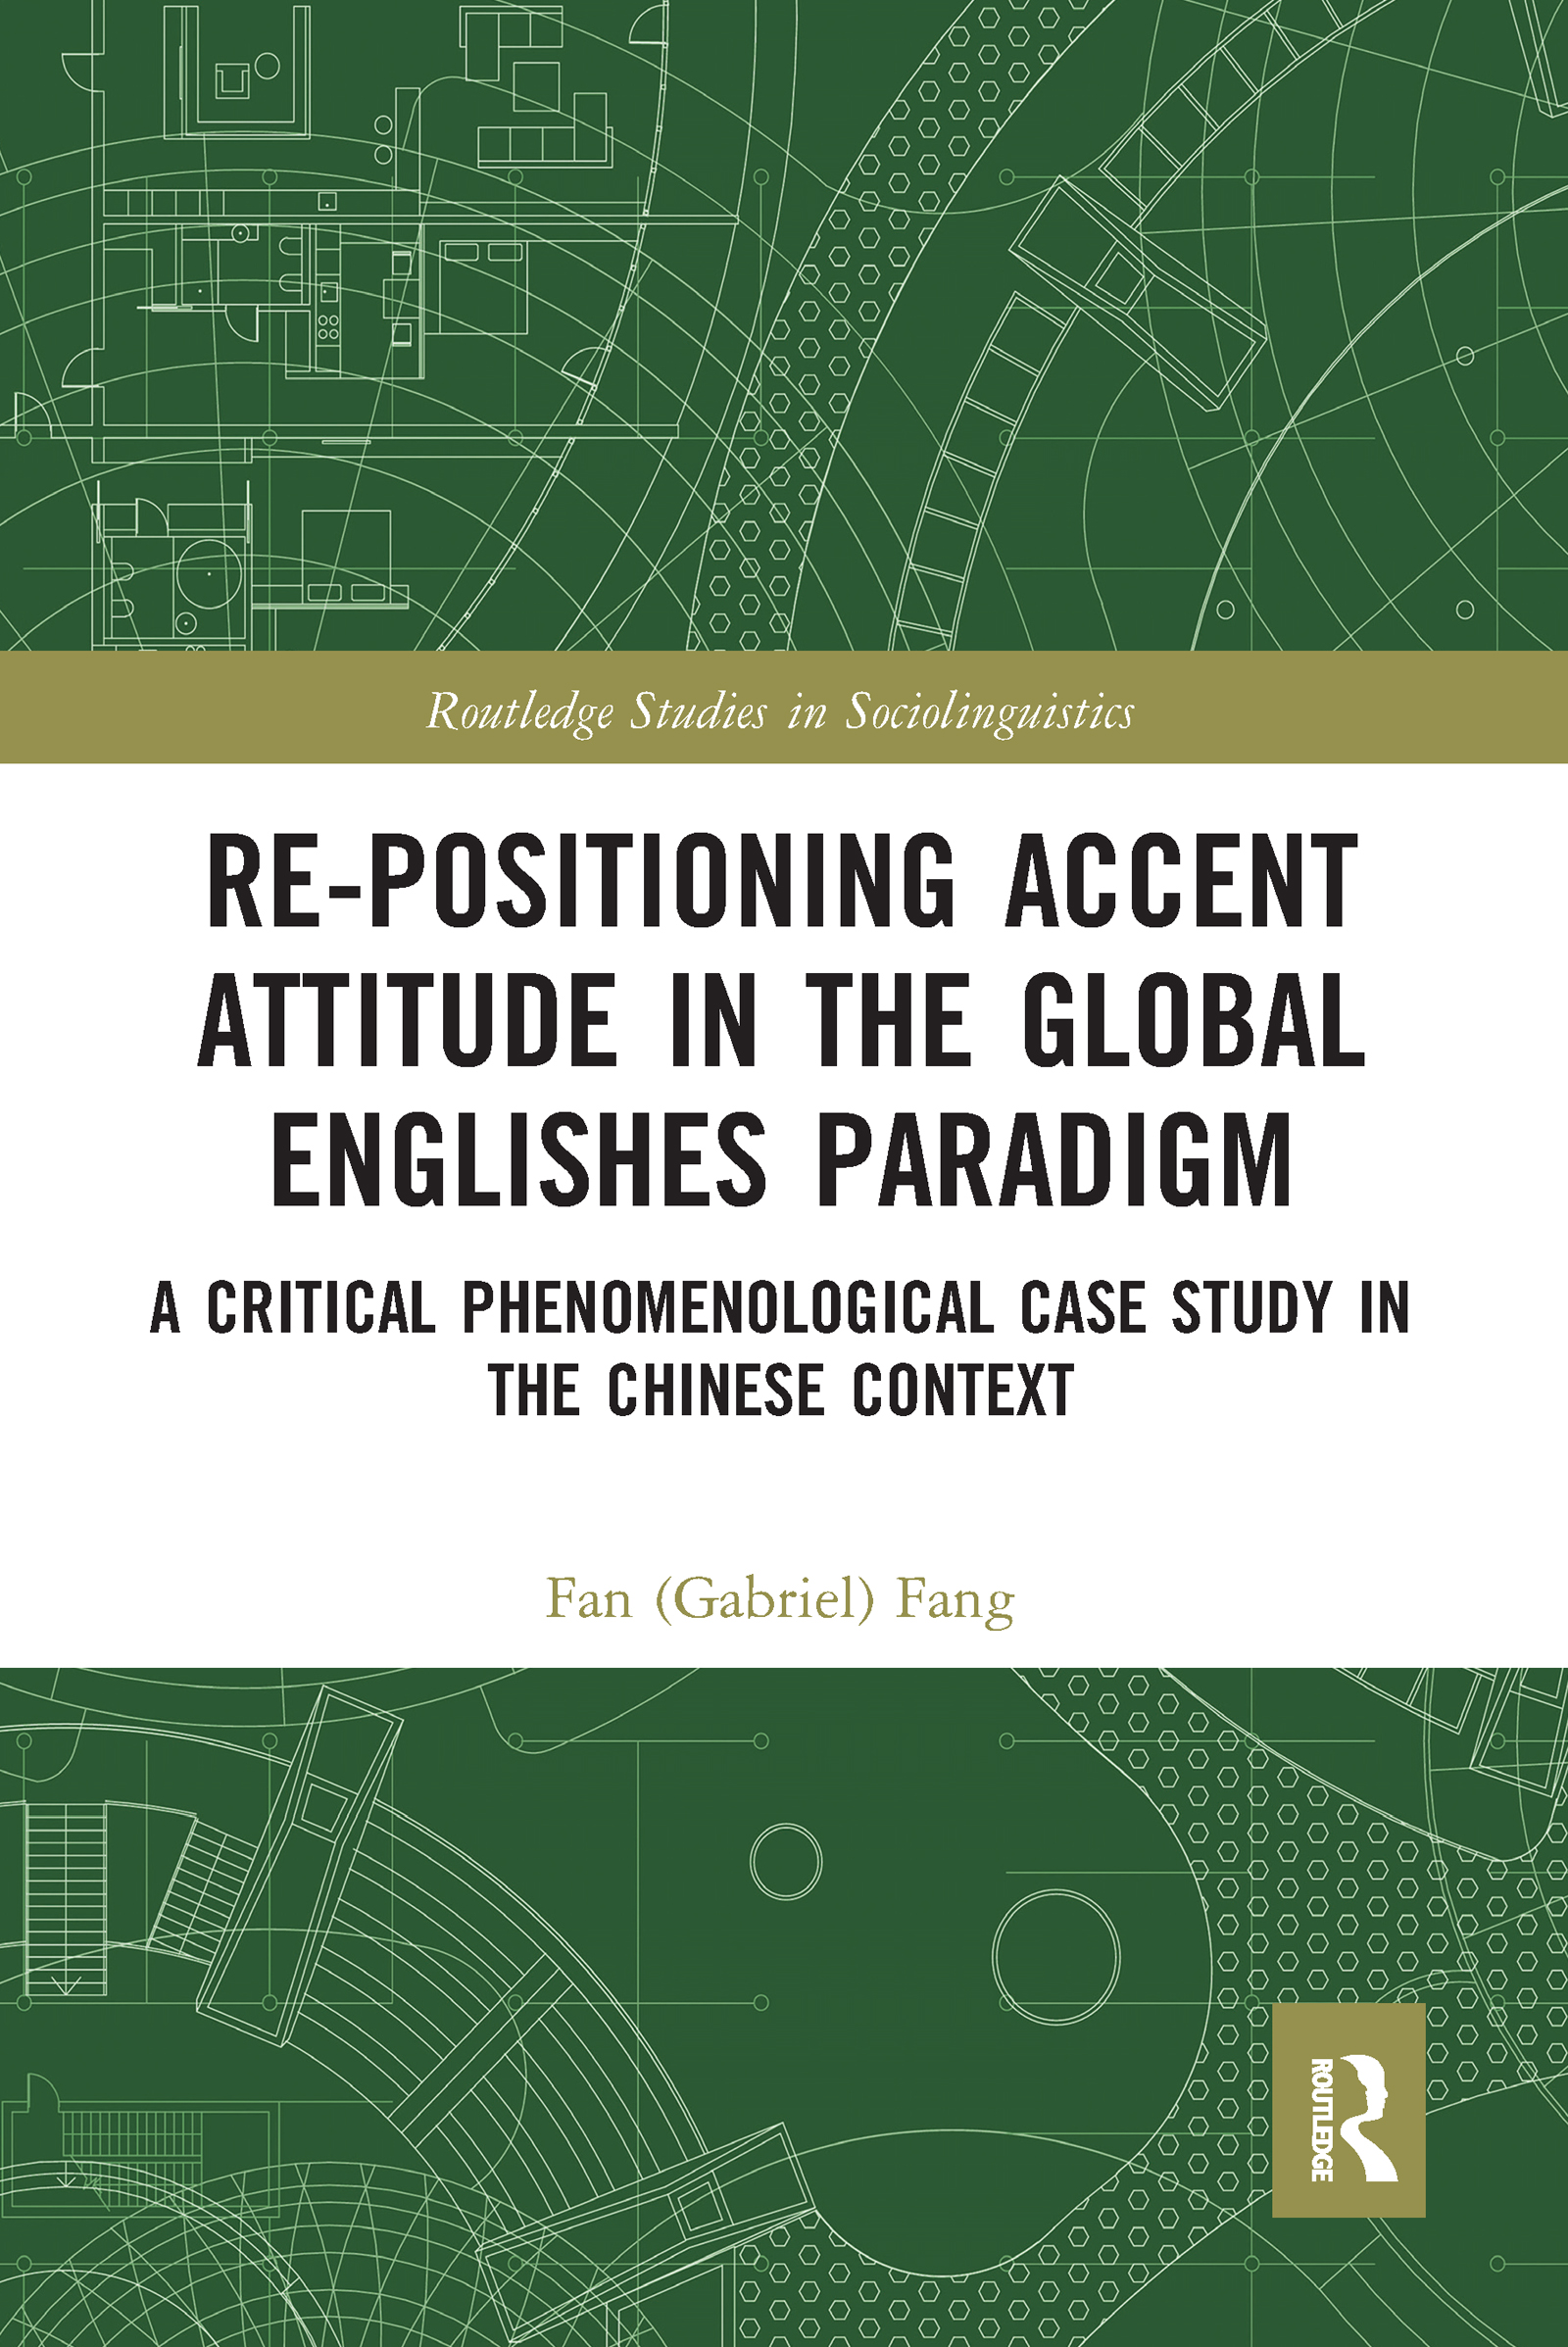 Re-positioning Accent Attitude in the Global Englishes Paradigm